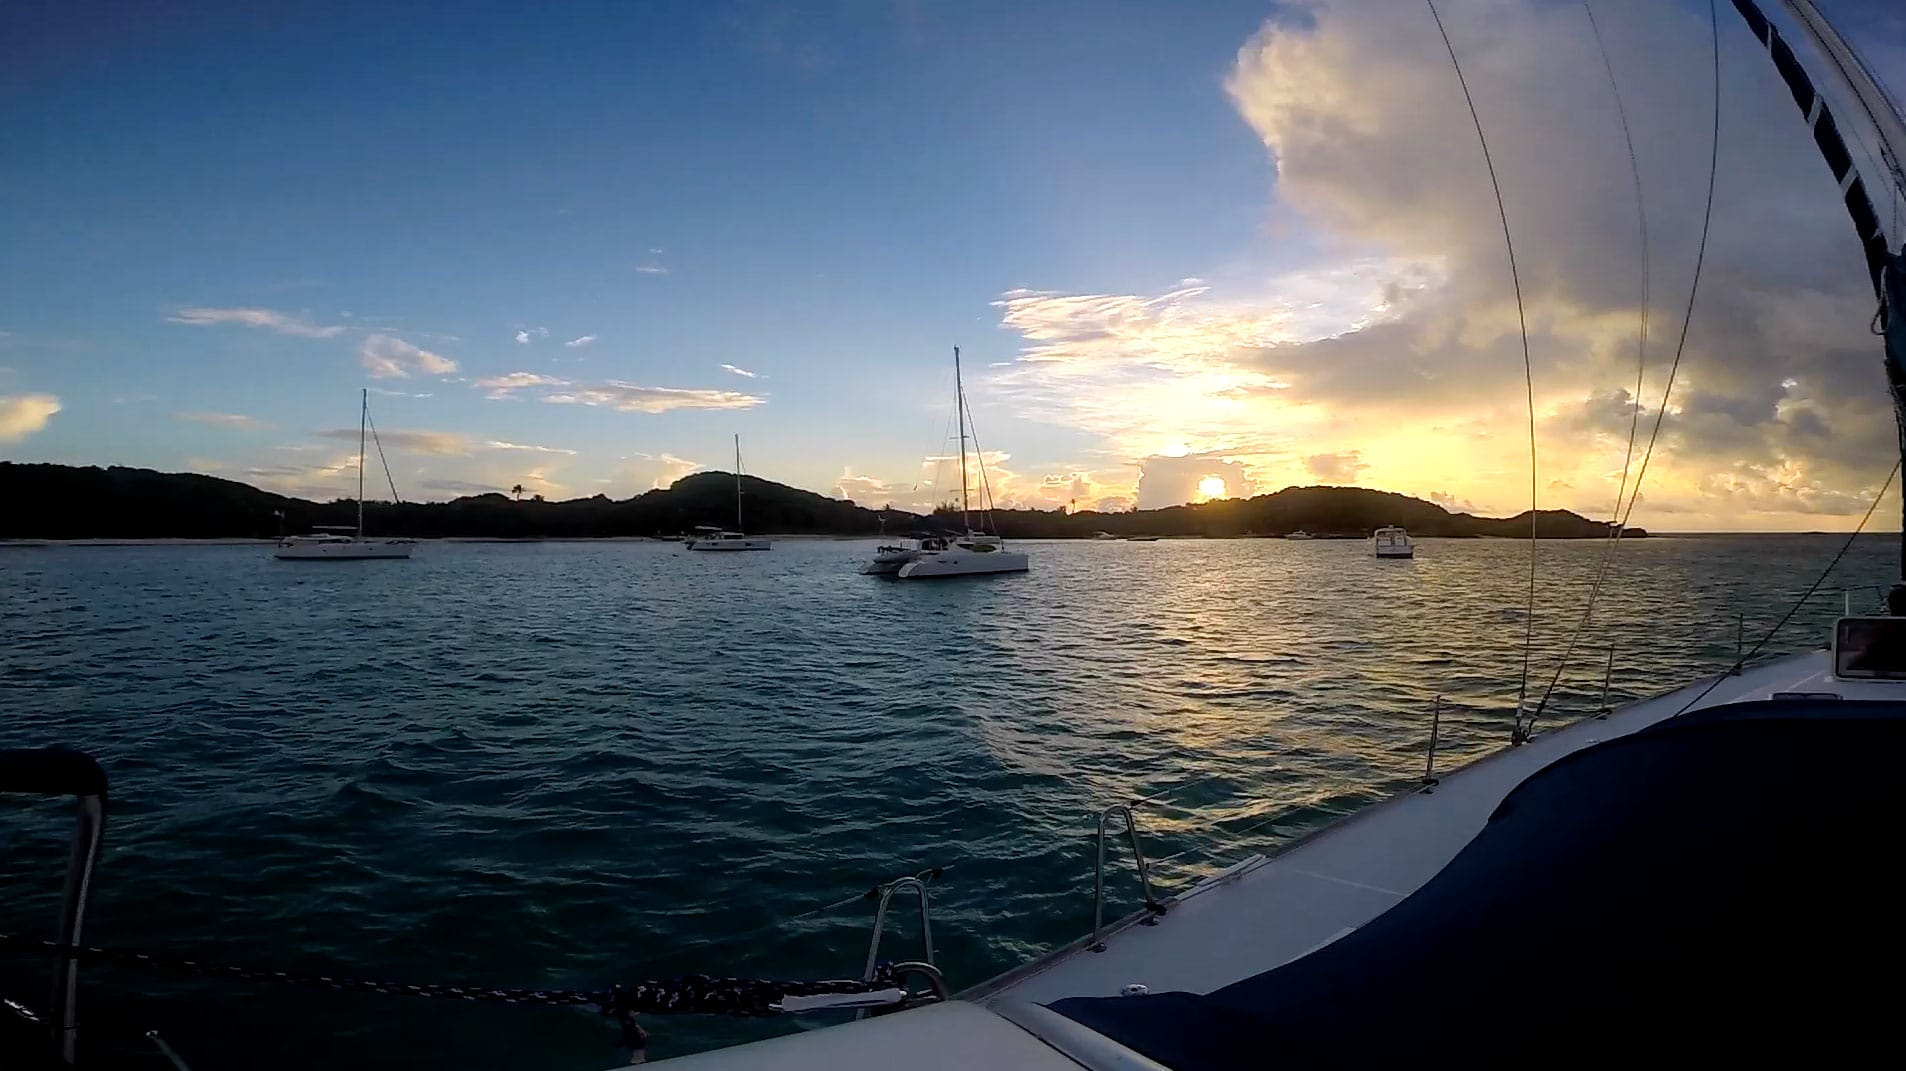 Grenadines Sailing Escape by Patrick Bennett